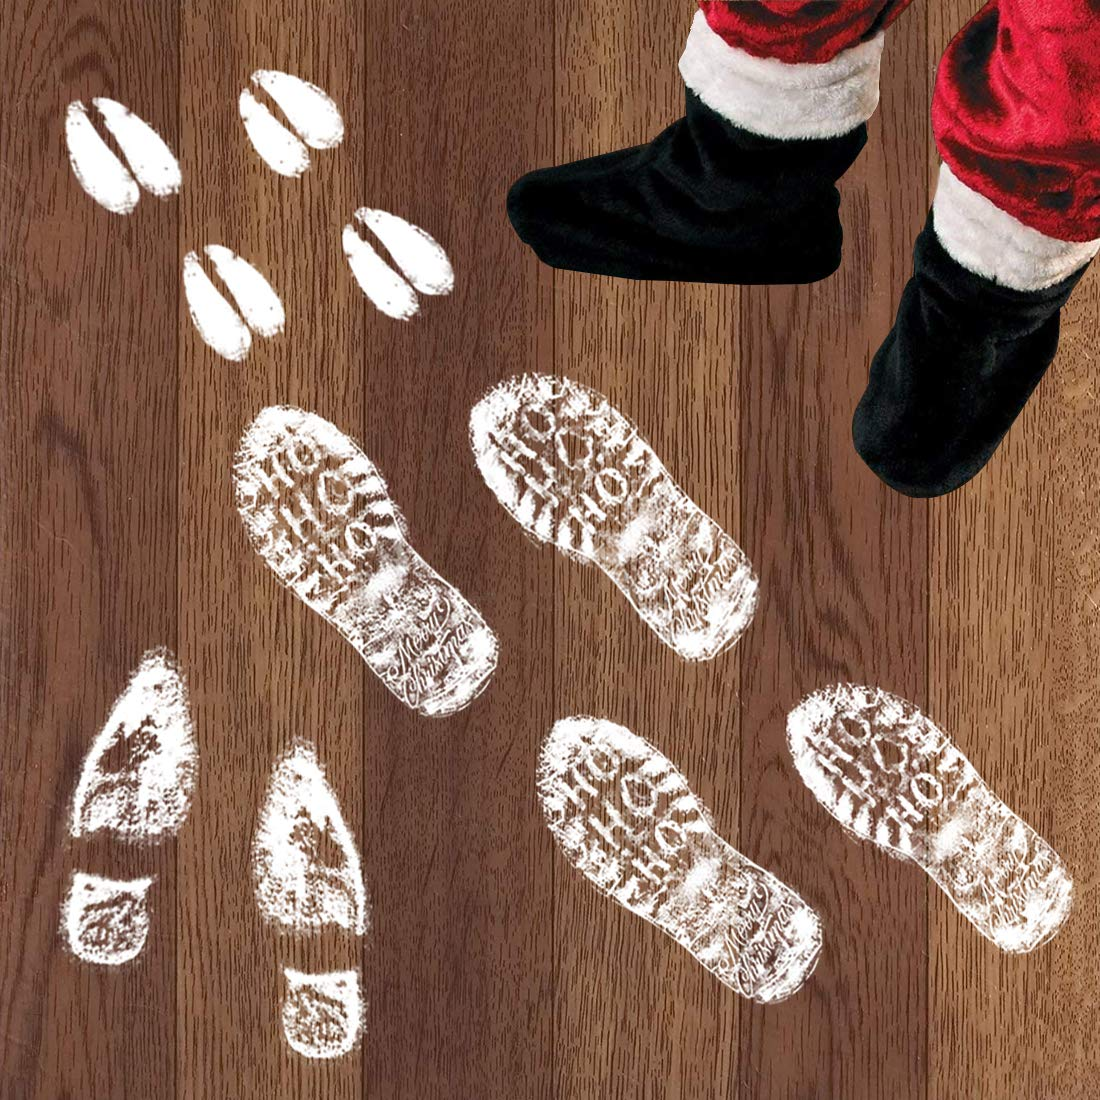 112 PCS Christmas Decorations Christmas Window Clings Footprint Decals Decoration Floor Stickers Christmas Party Supplies Indoor/Outdoor Garma